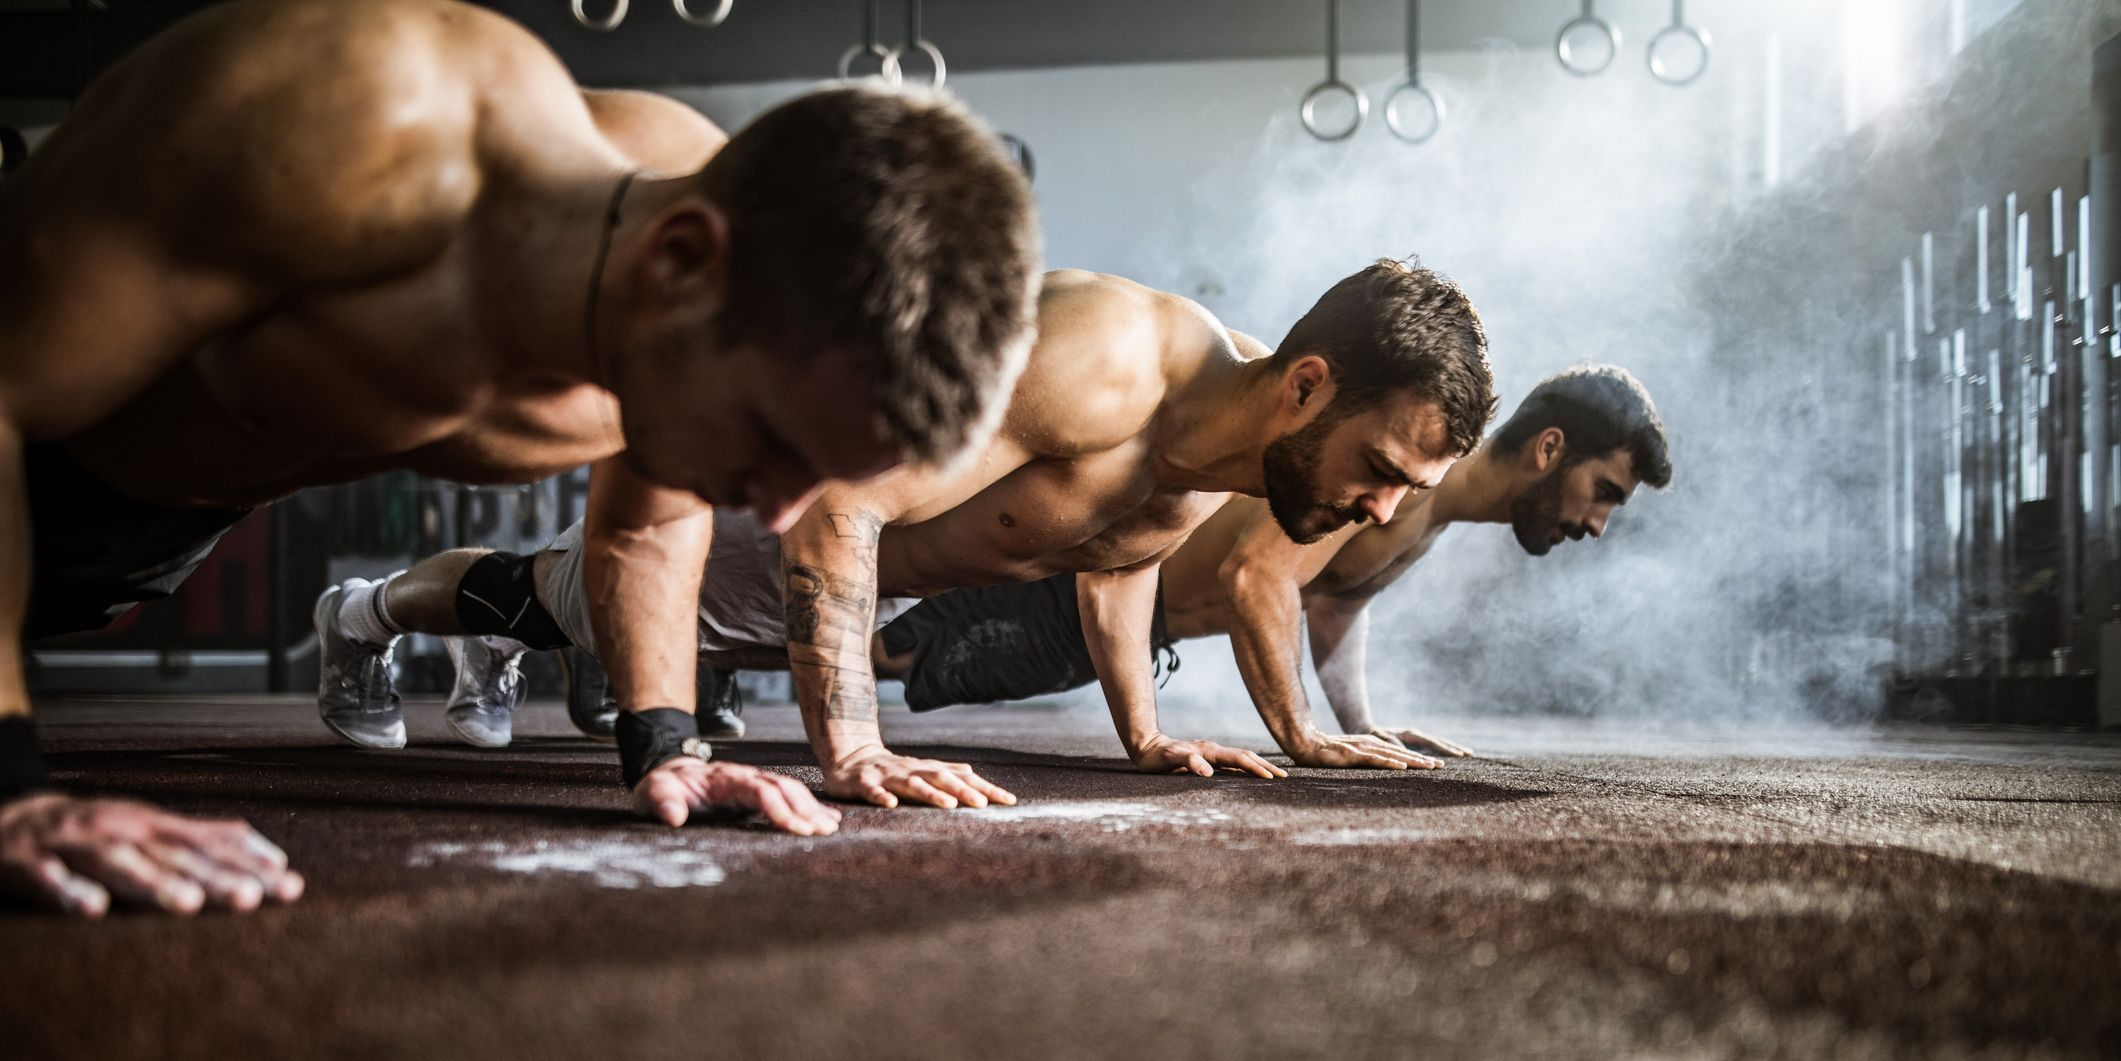 Group of athletic men exercising push-ups in a health club.